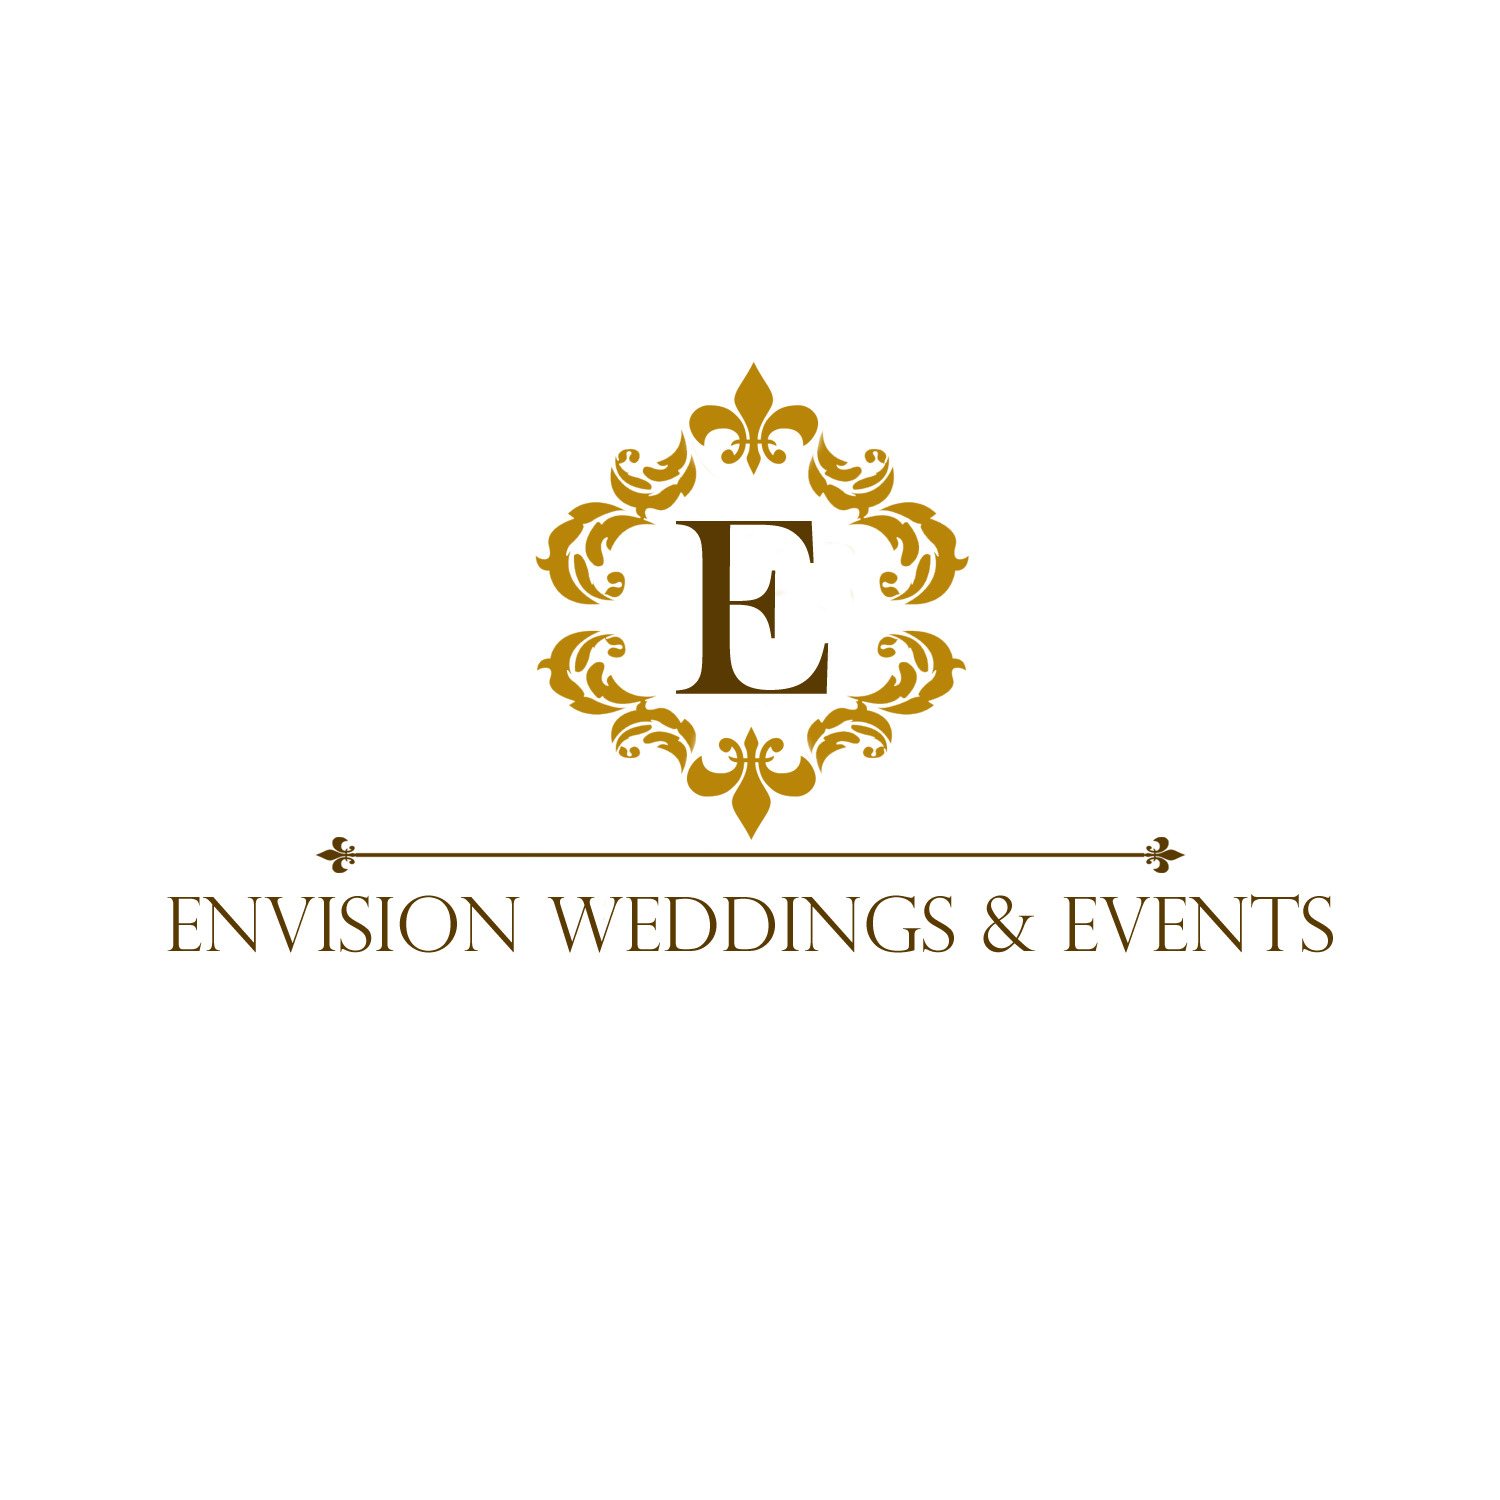 The events industry BusinessMarketing bibliographies